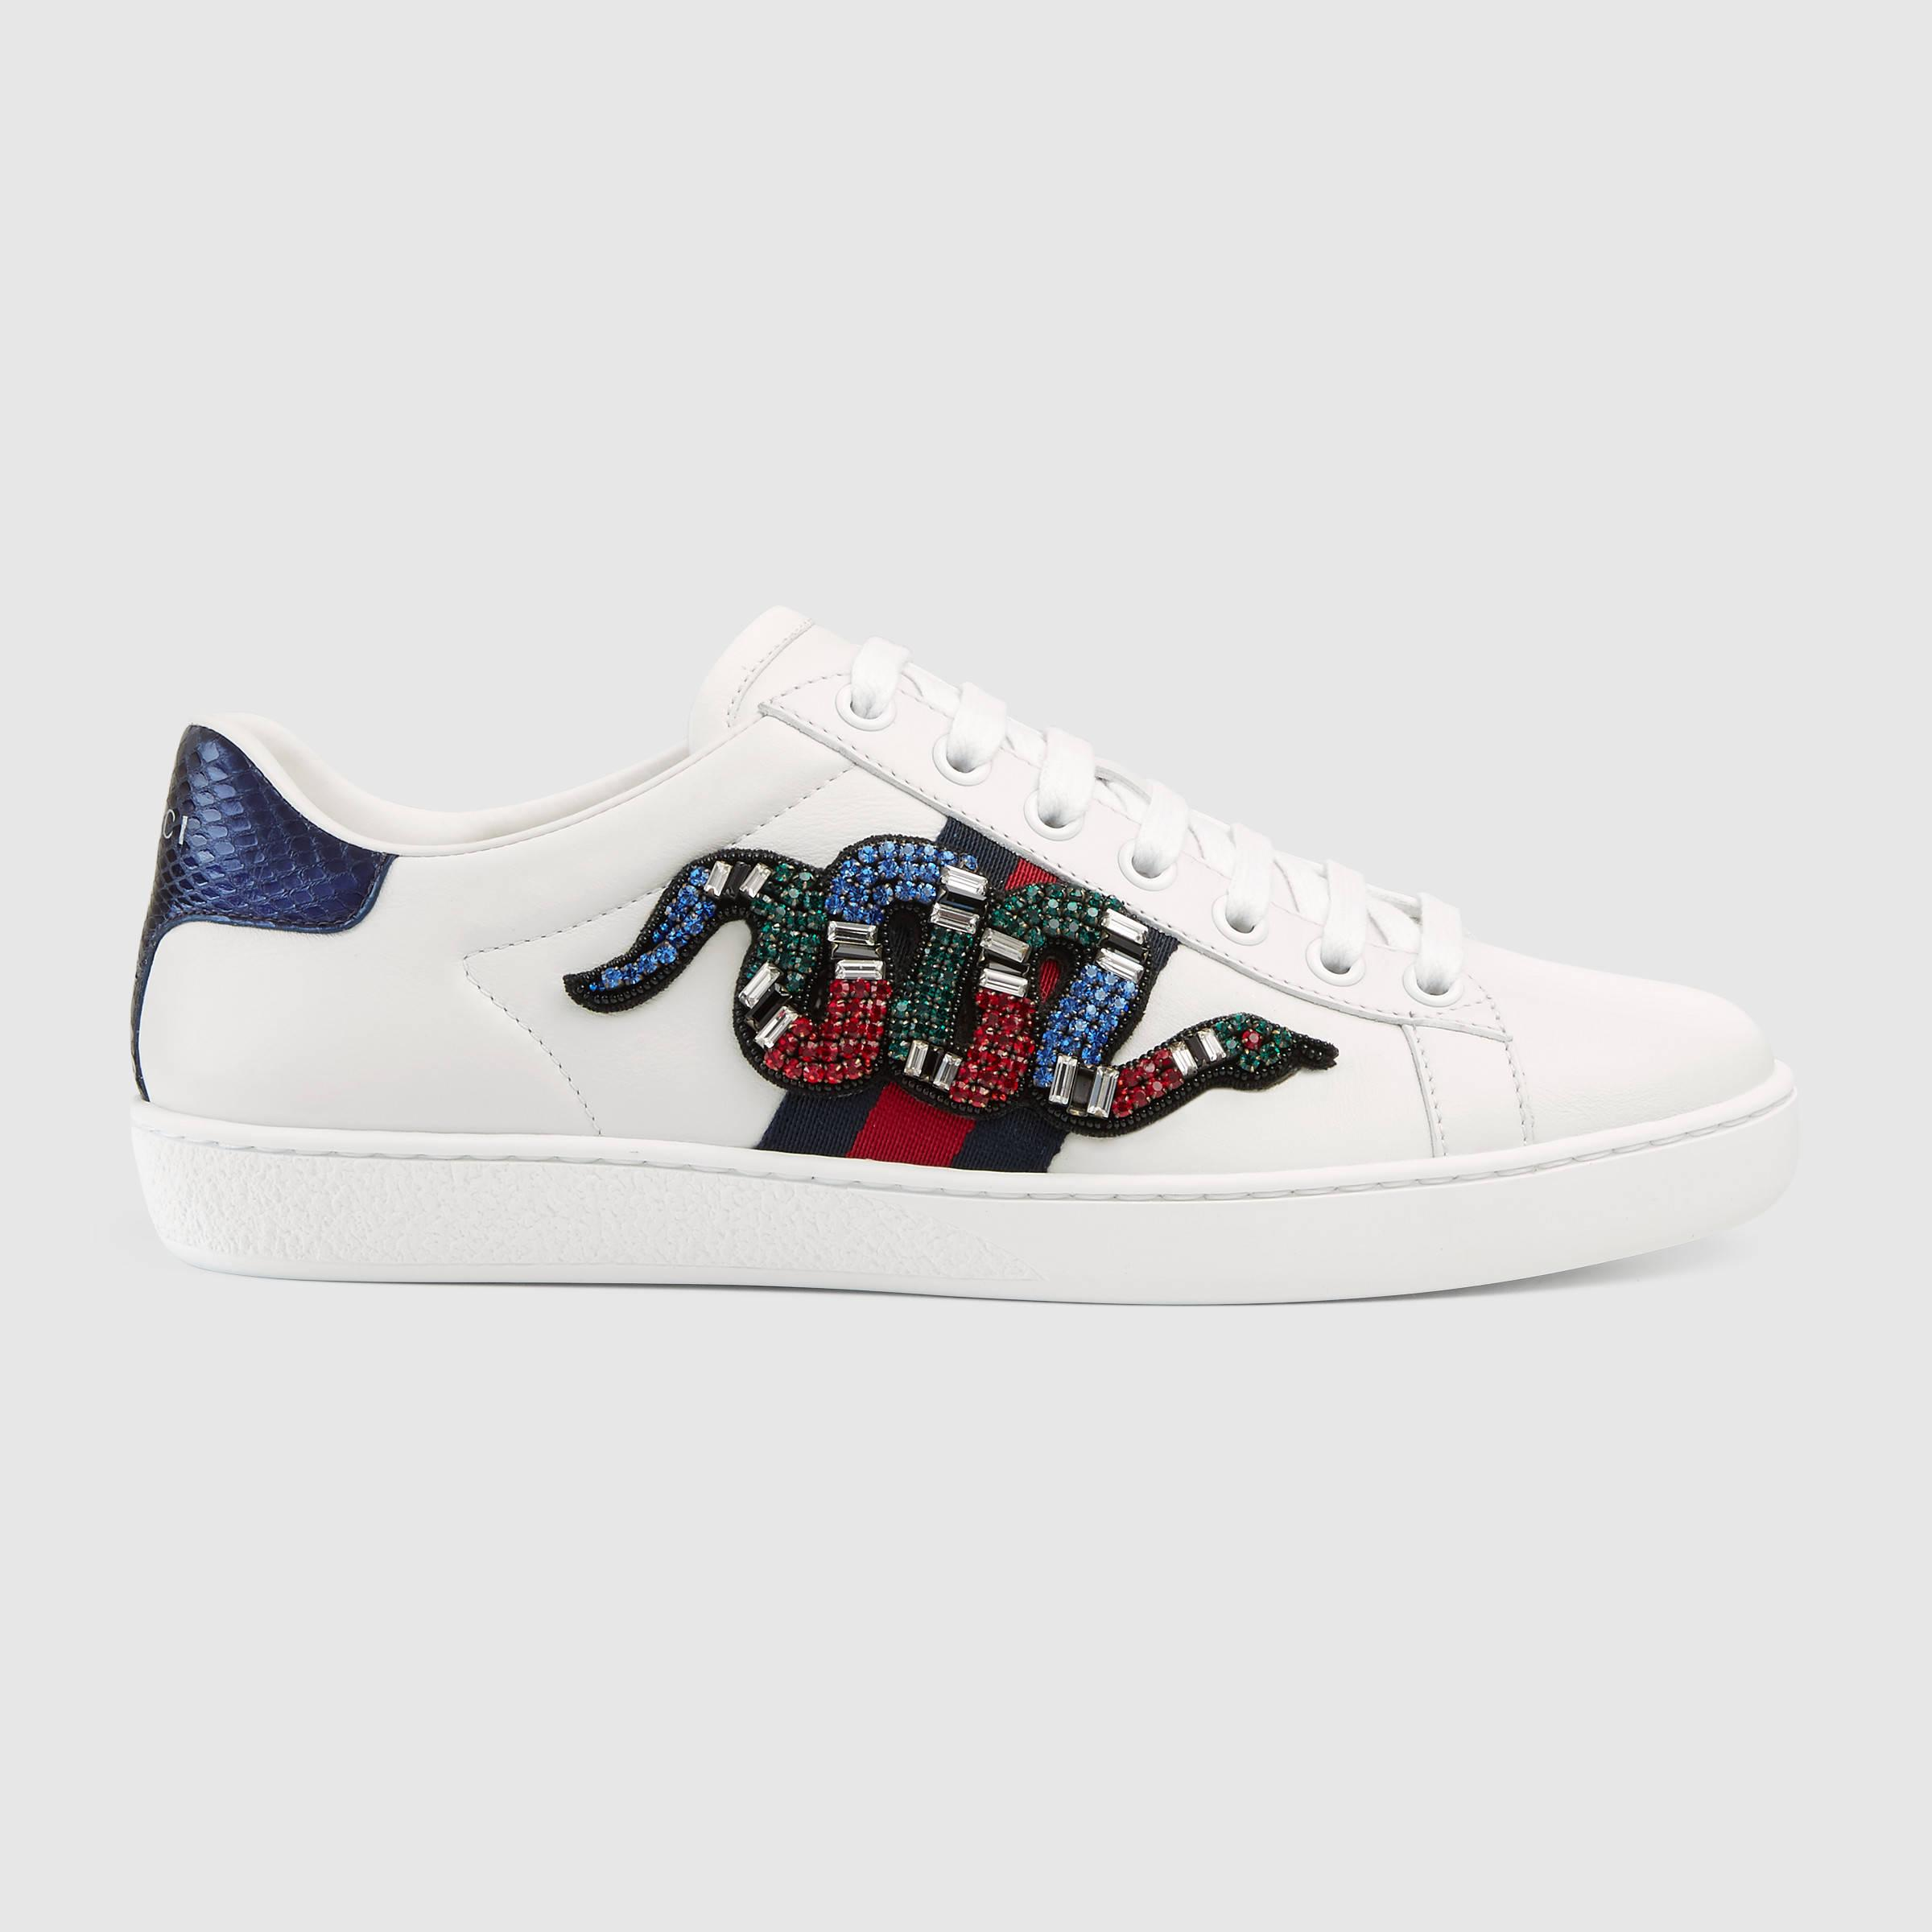 gucci ace embroidered low top sneaker for men lyst. Black Bedroom Furniture Sets. Home Design Ideas